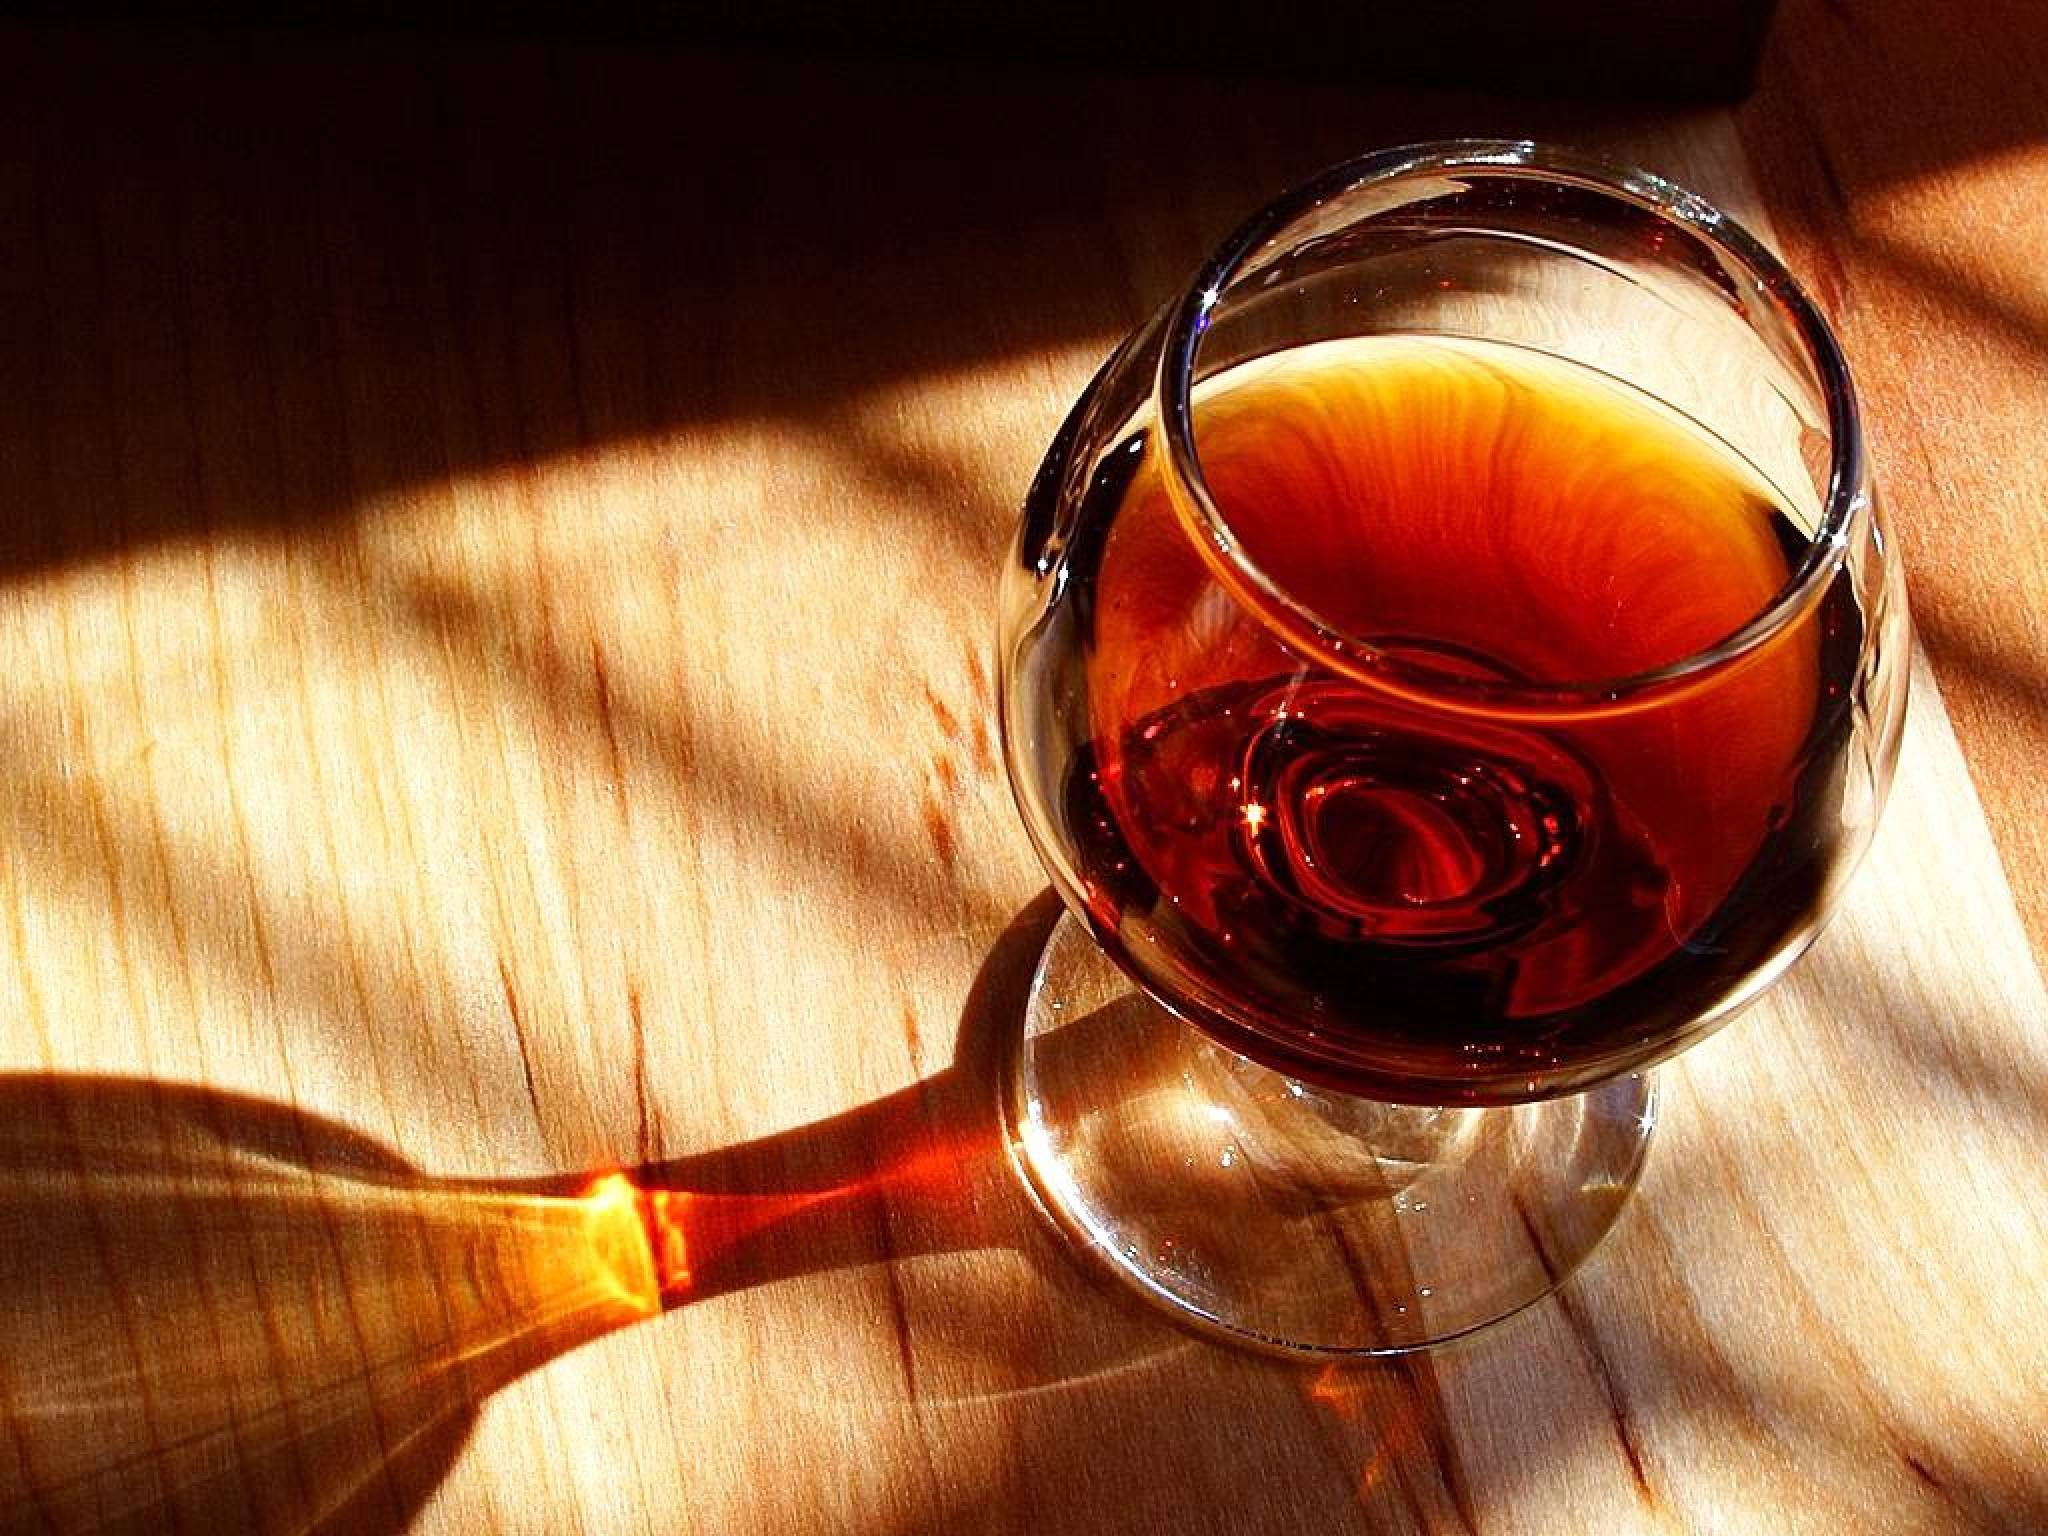 How many calories in a Brandy, cognac? (175 kcal)